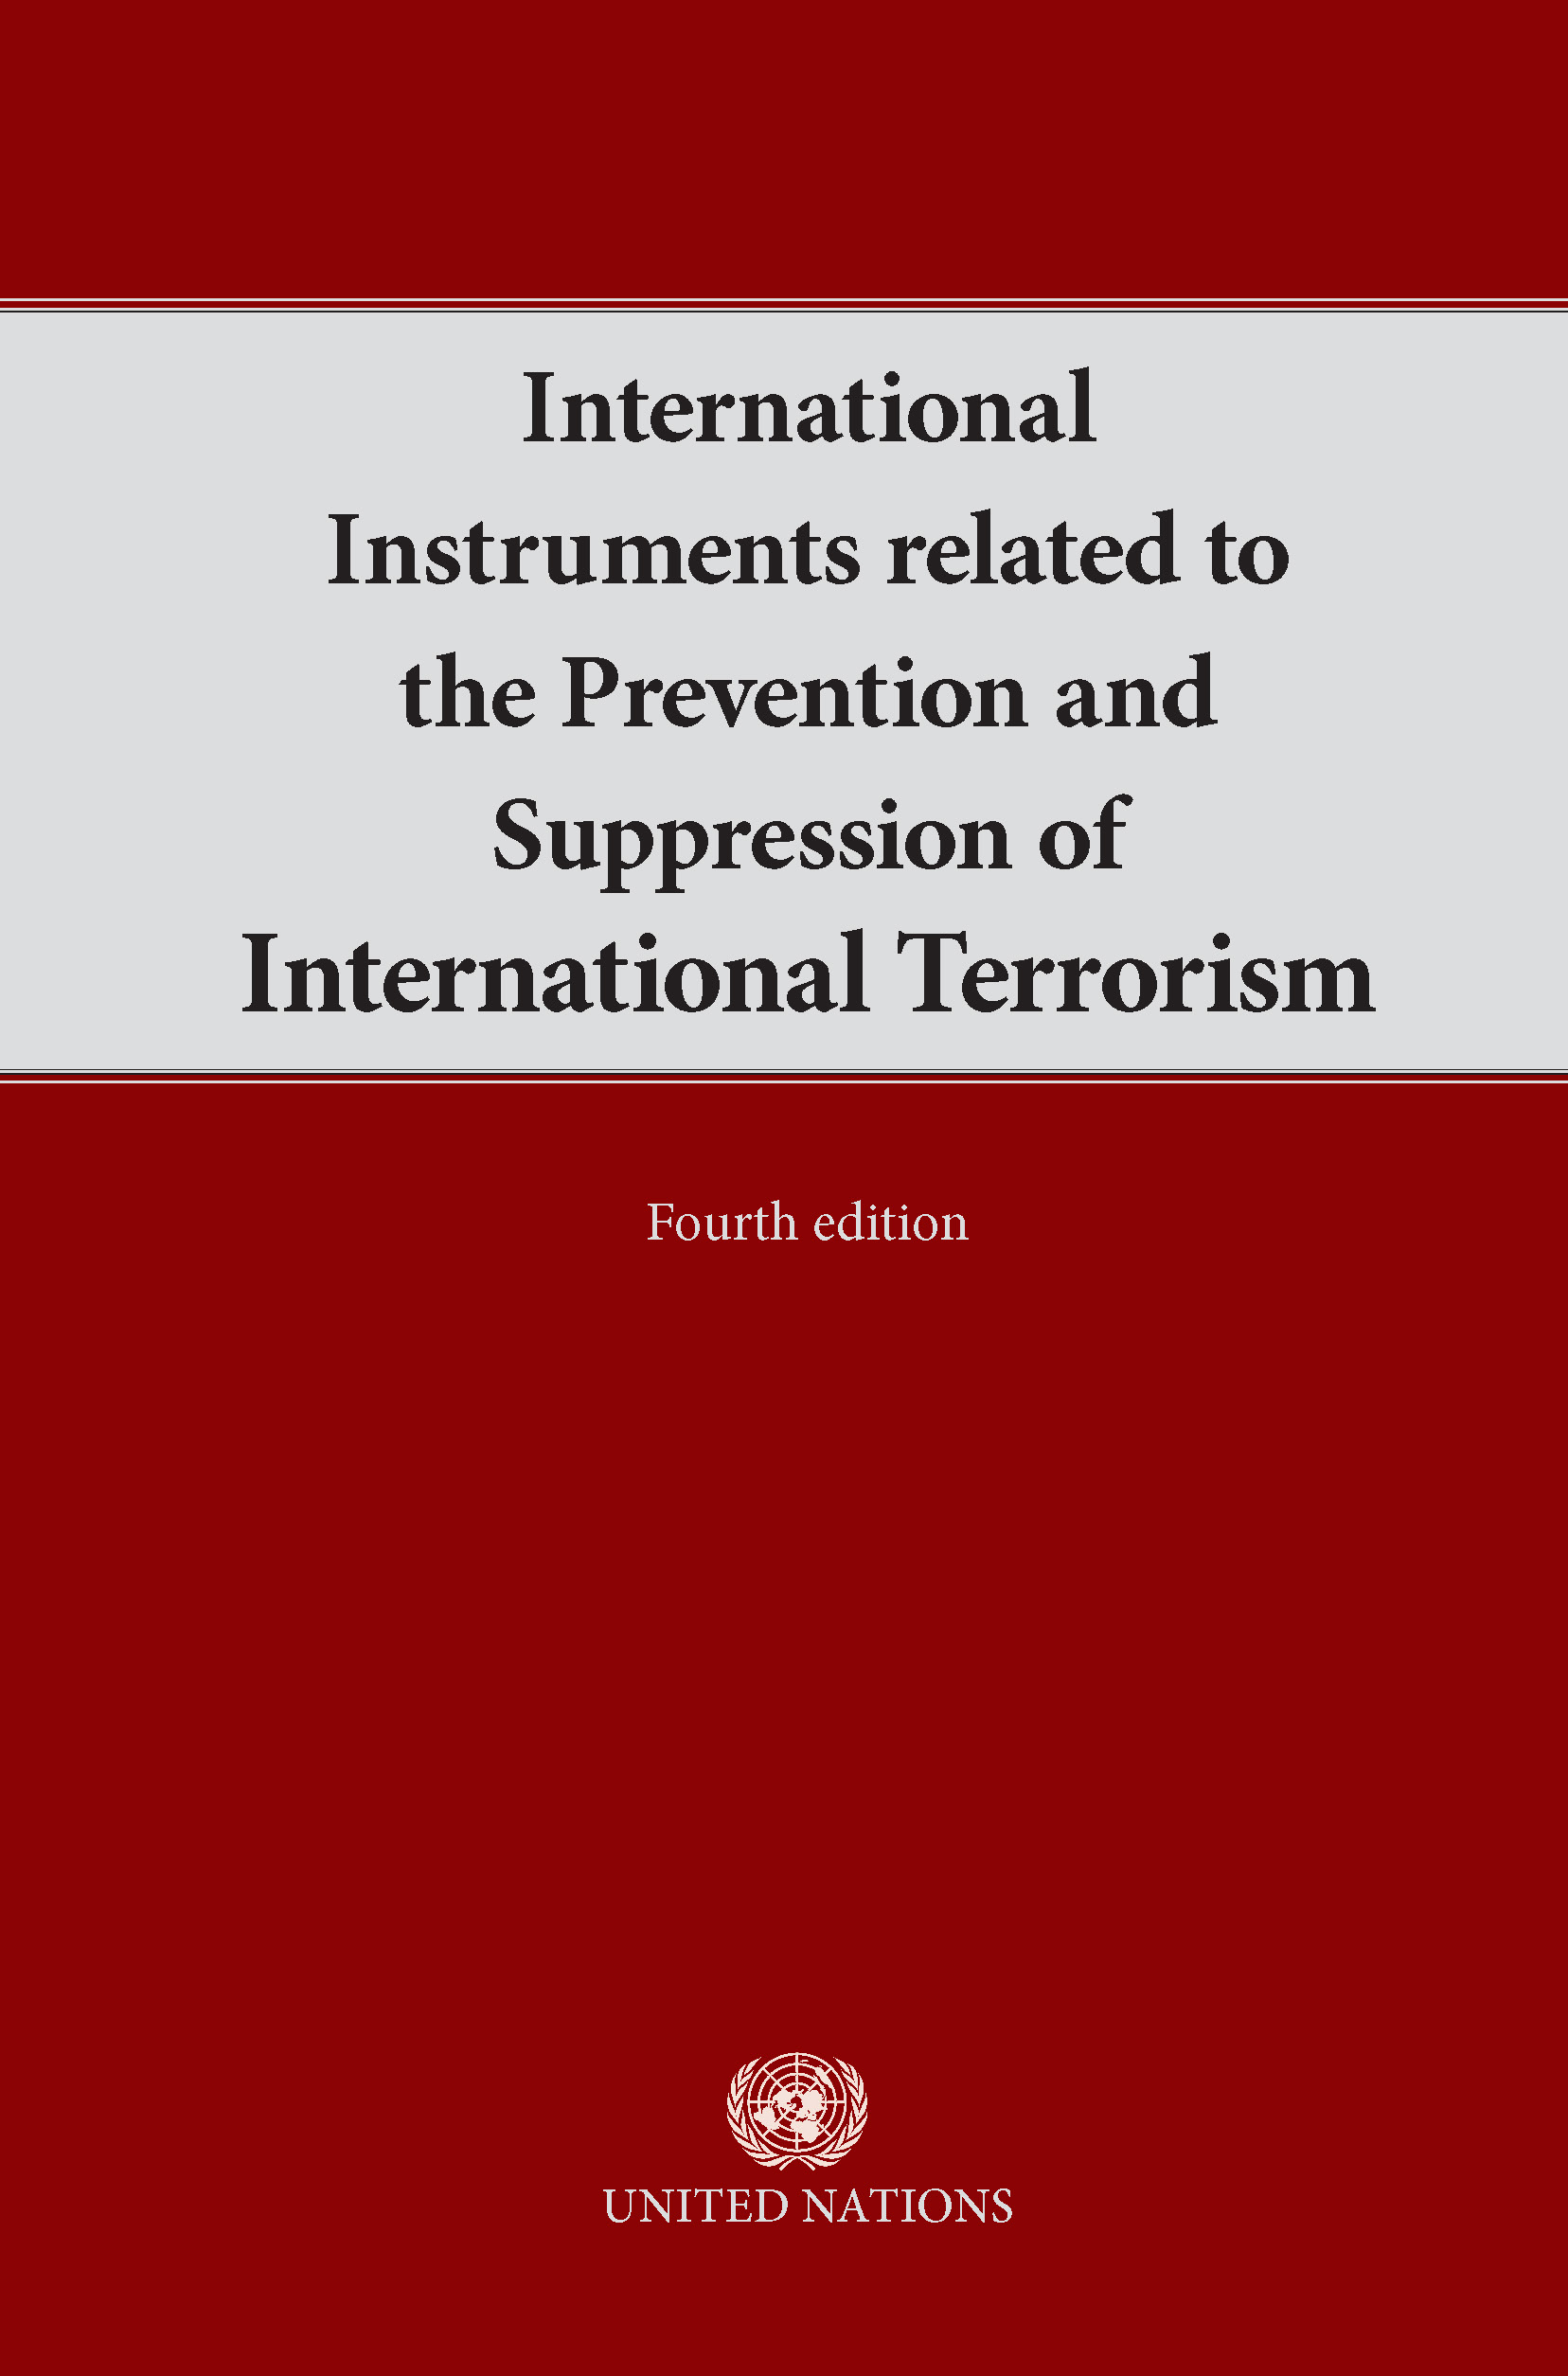 image of International Instruments Related to the Prevention and Suppression of International Terrorism